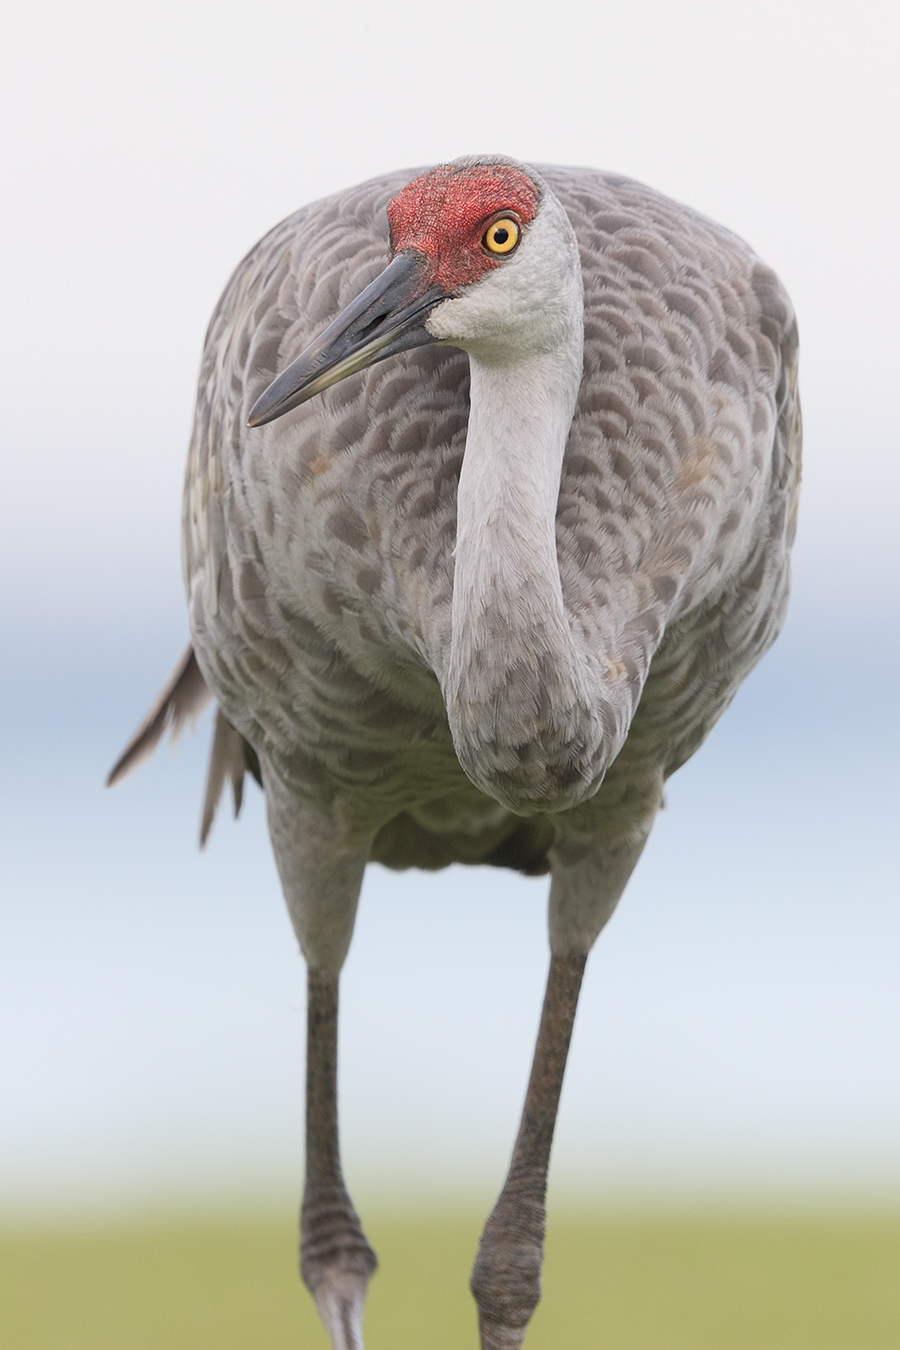 sandhill-crane-walking-forward-bigi-in-the-frame-036a3594-indian-lake-estates-fl